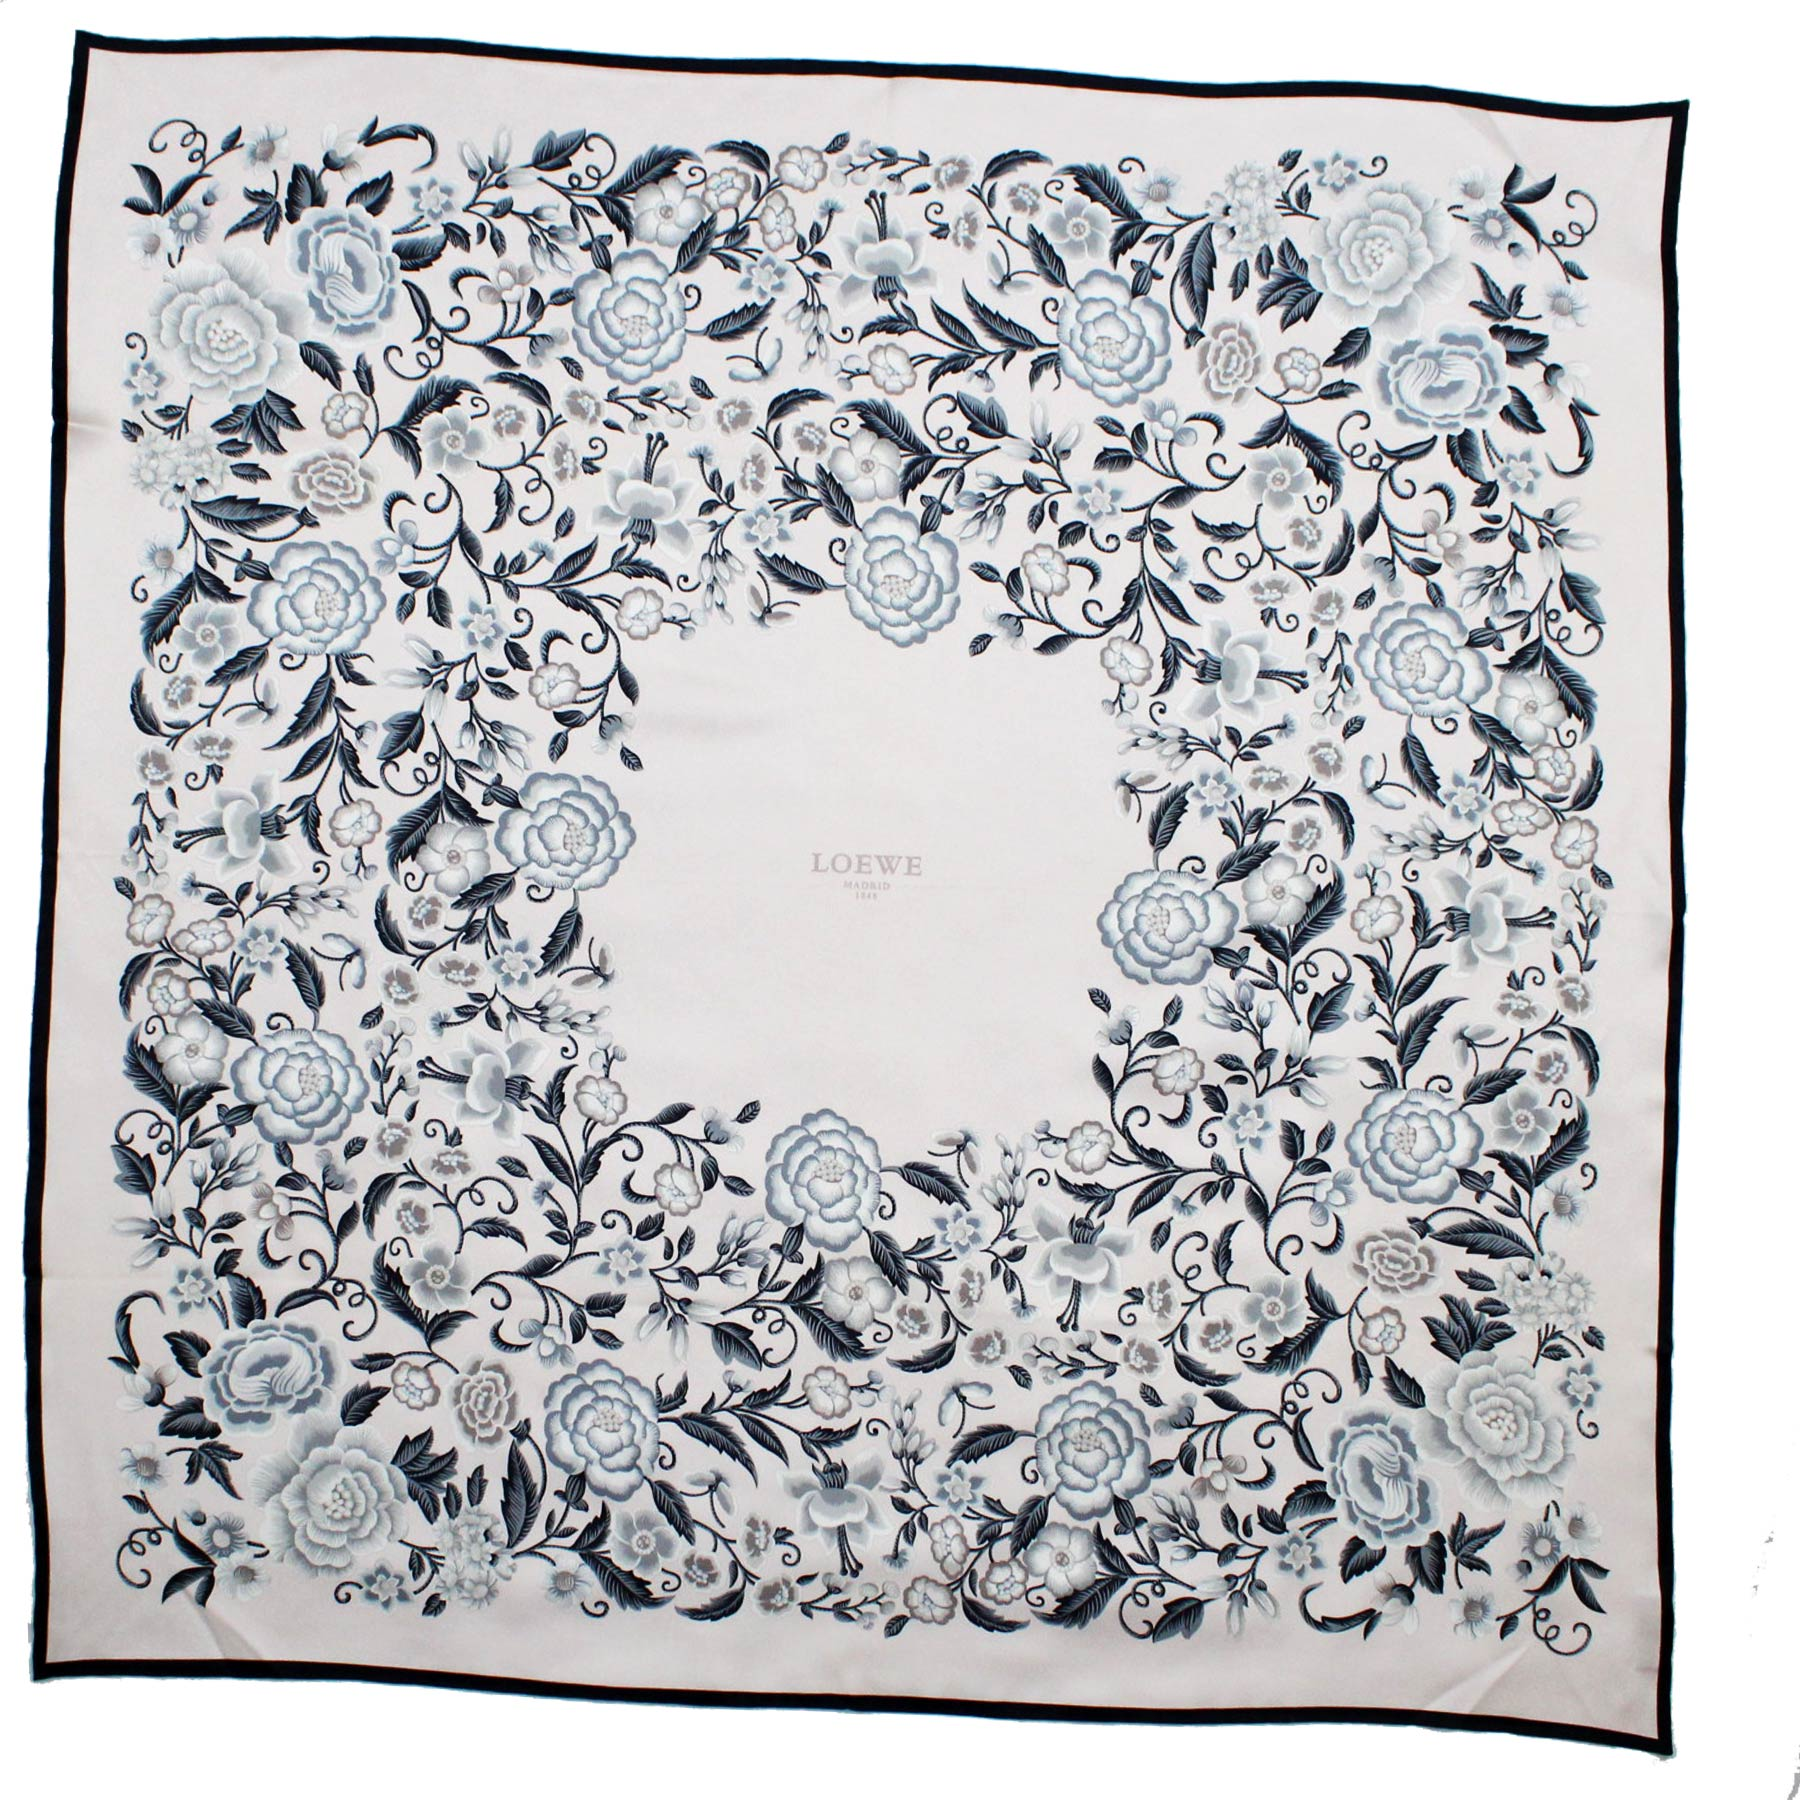 Loewe Silk Scarf Light Pink Gray Black Floral - Large Square Scarf